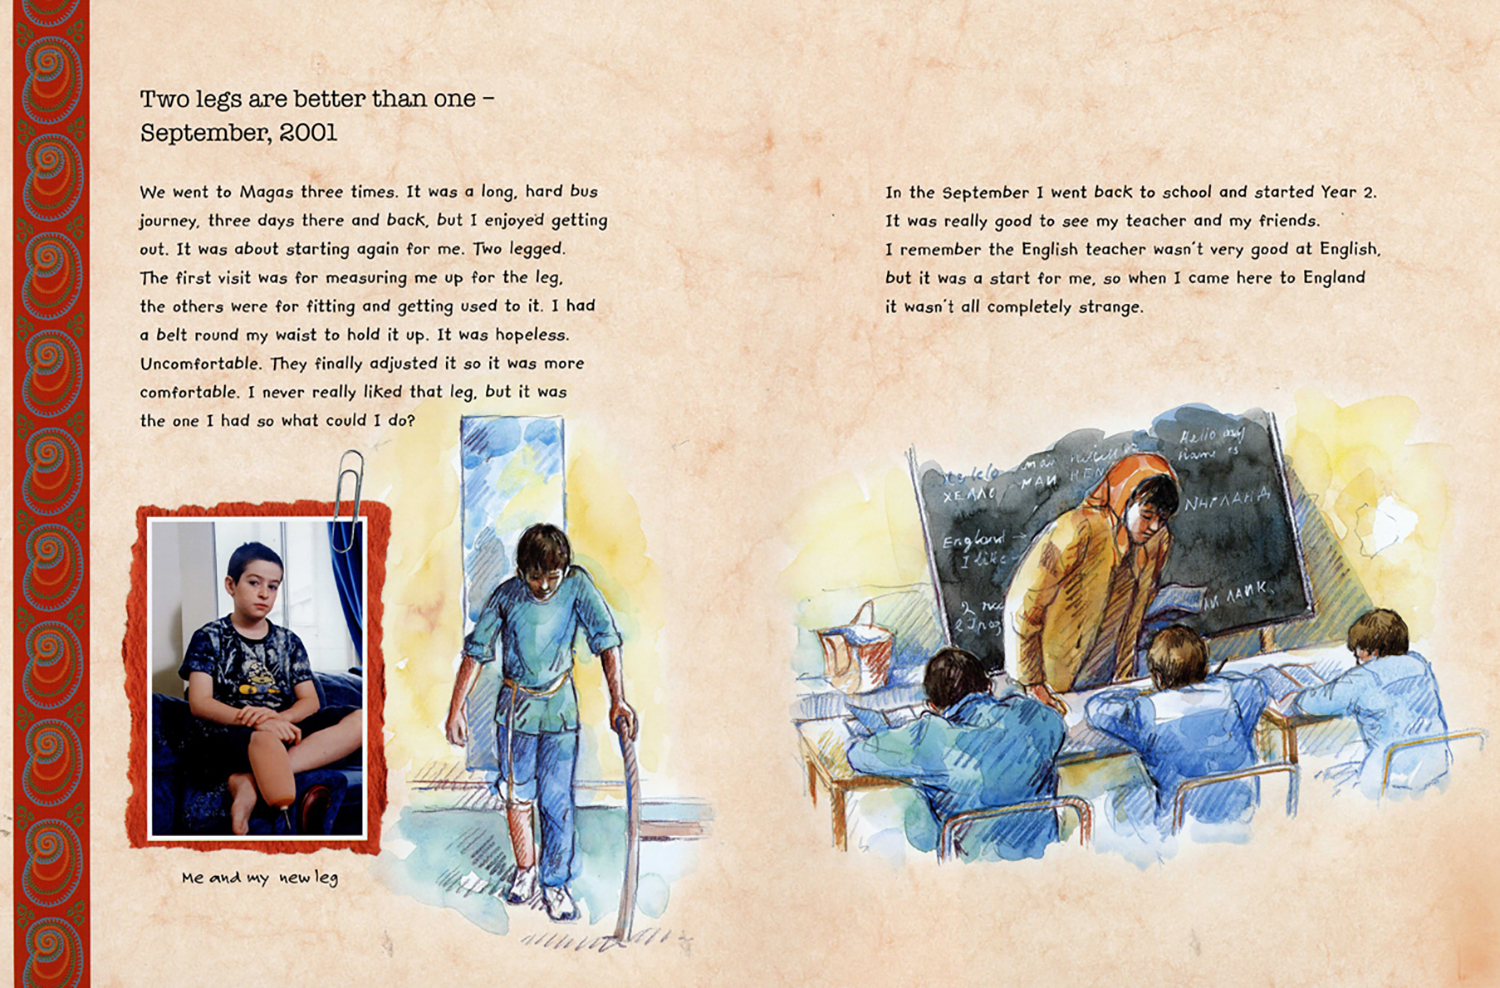 'Hamzat's Journey' by Anthony Robinson published by Frances Lincoln Ltd.